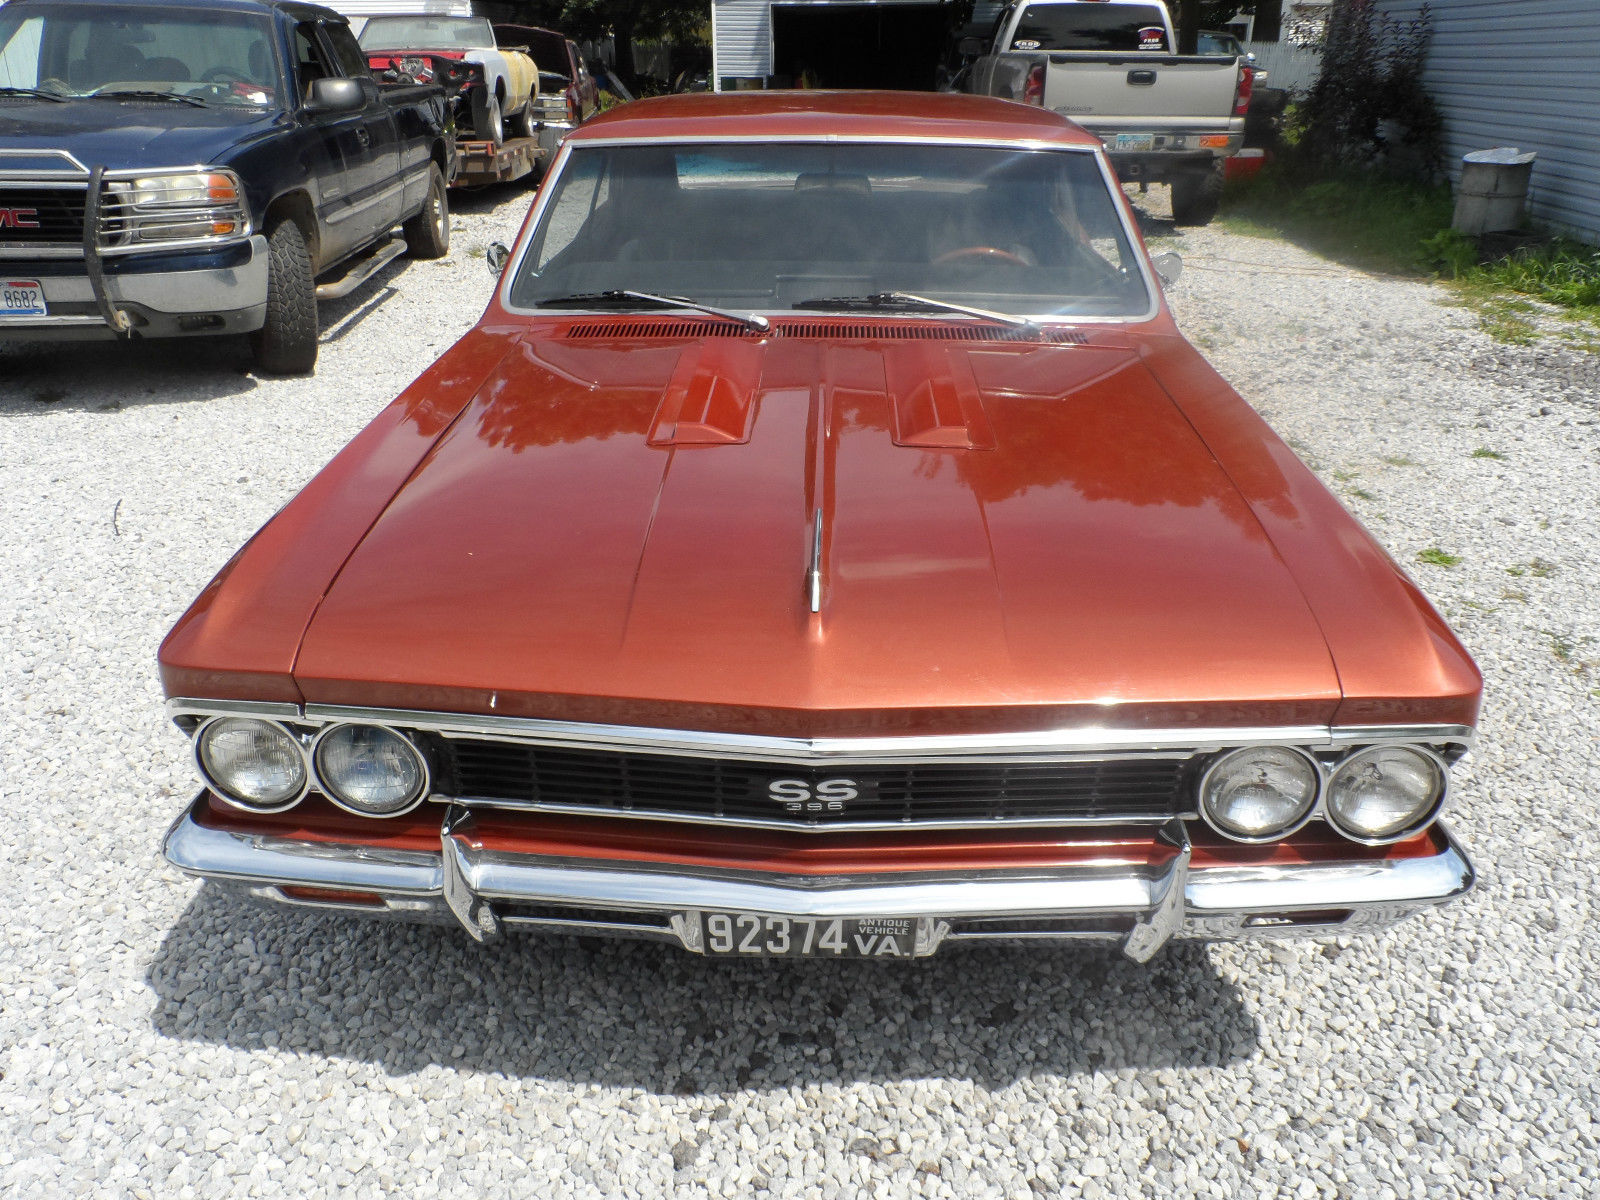 1966 Chevrolet Chevelle - Project Cars For Sale